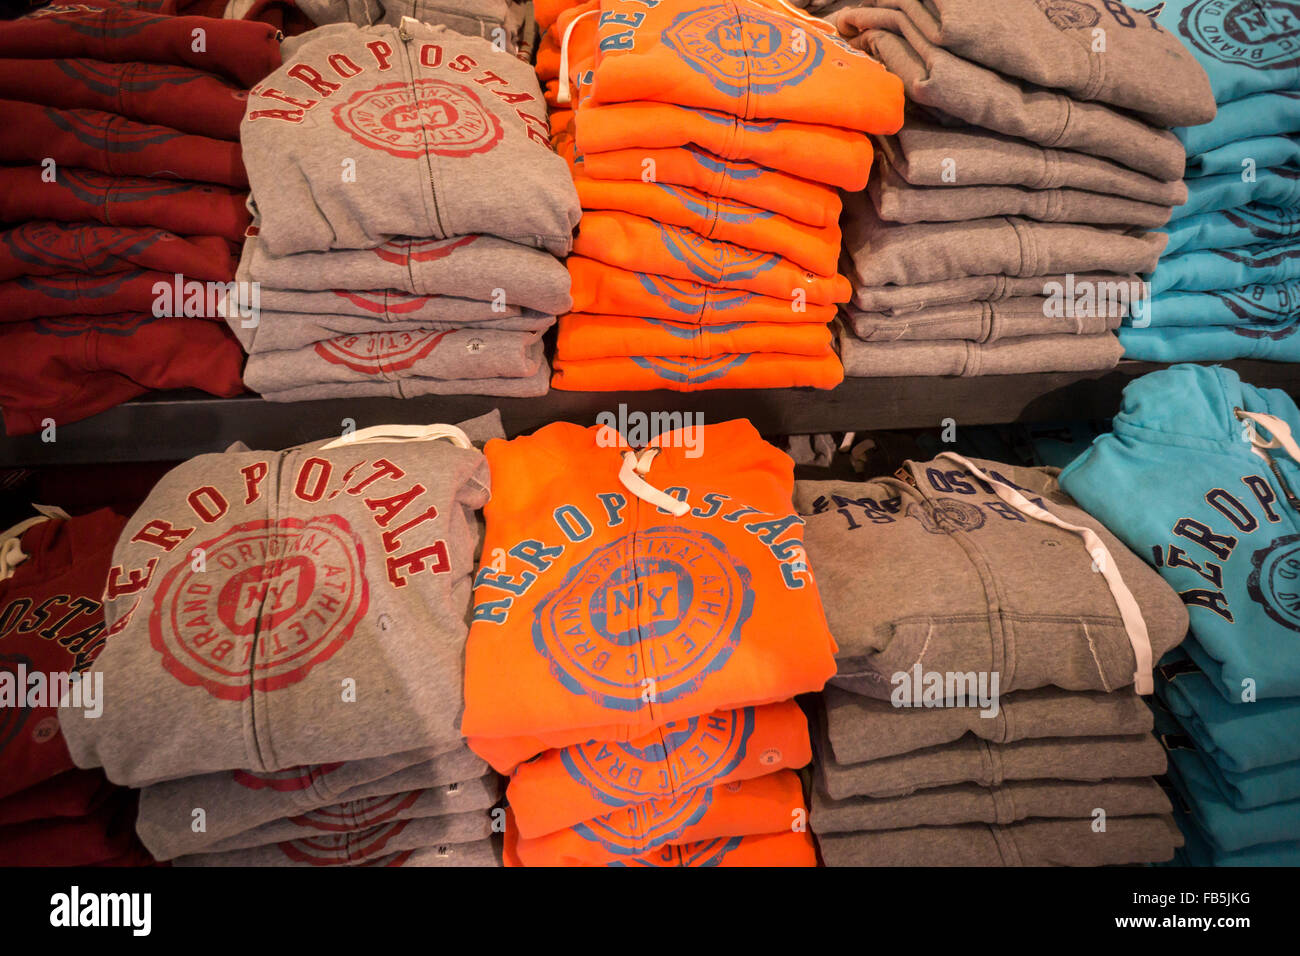 Aeropostale logo branded merchandise in their Times Square store in New York on Tuesday, January 5, 2016. (© - Stock Image